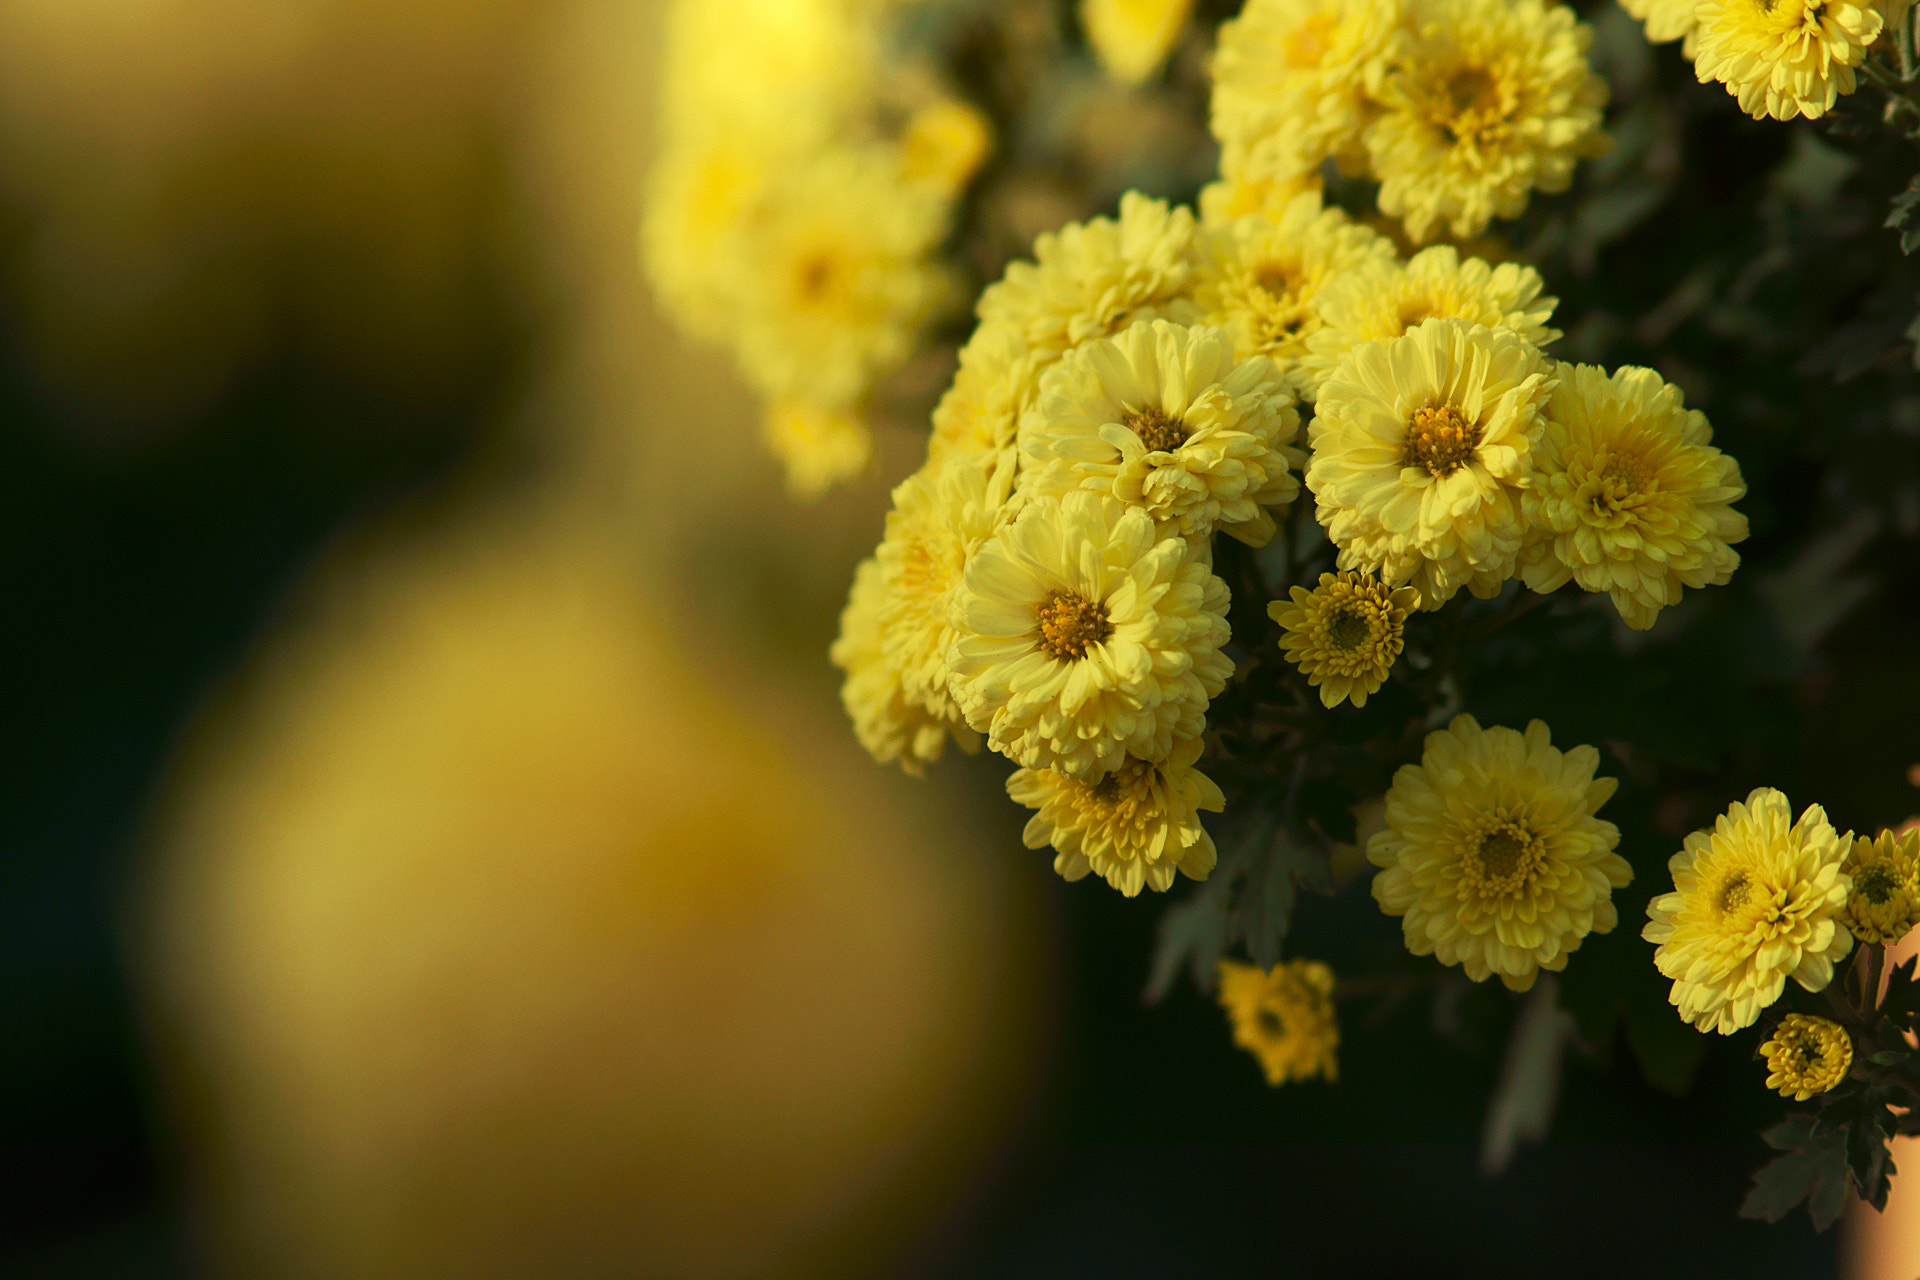 Photograph chrysanthemum_02 by James Chow on 500px